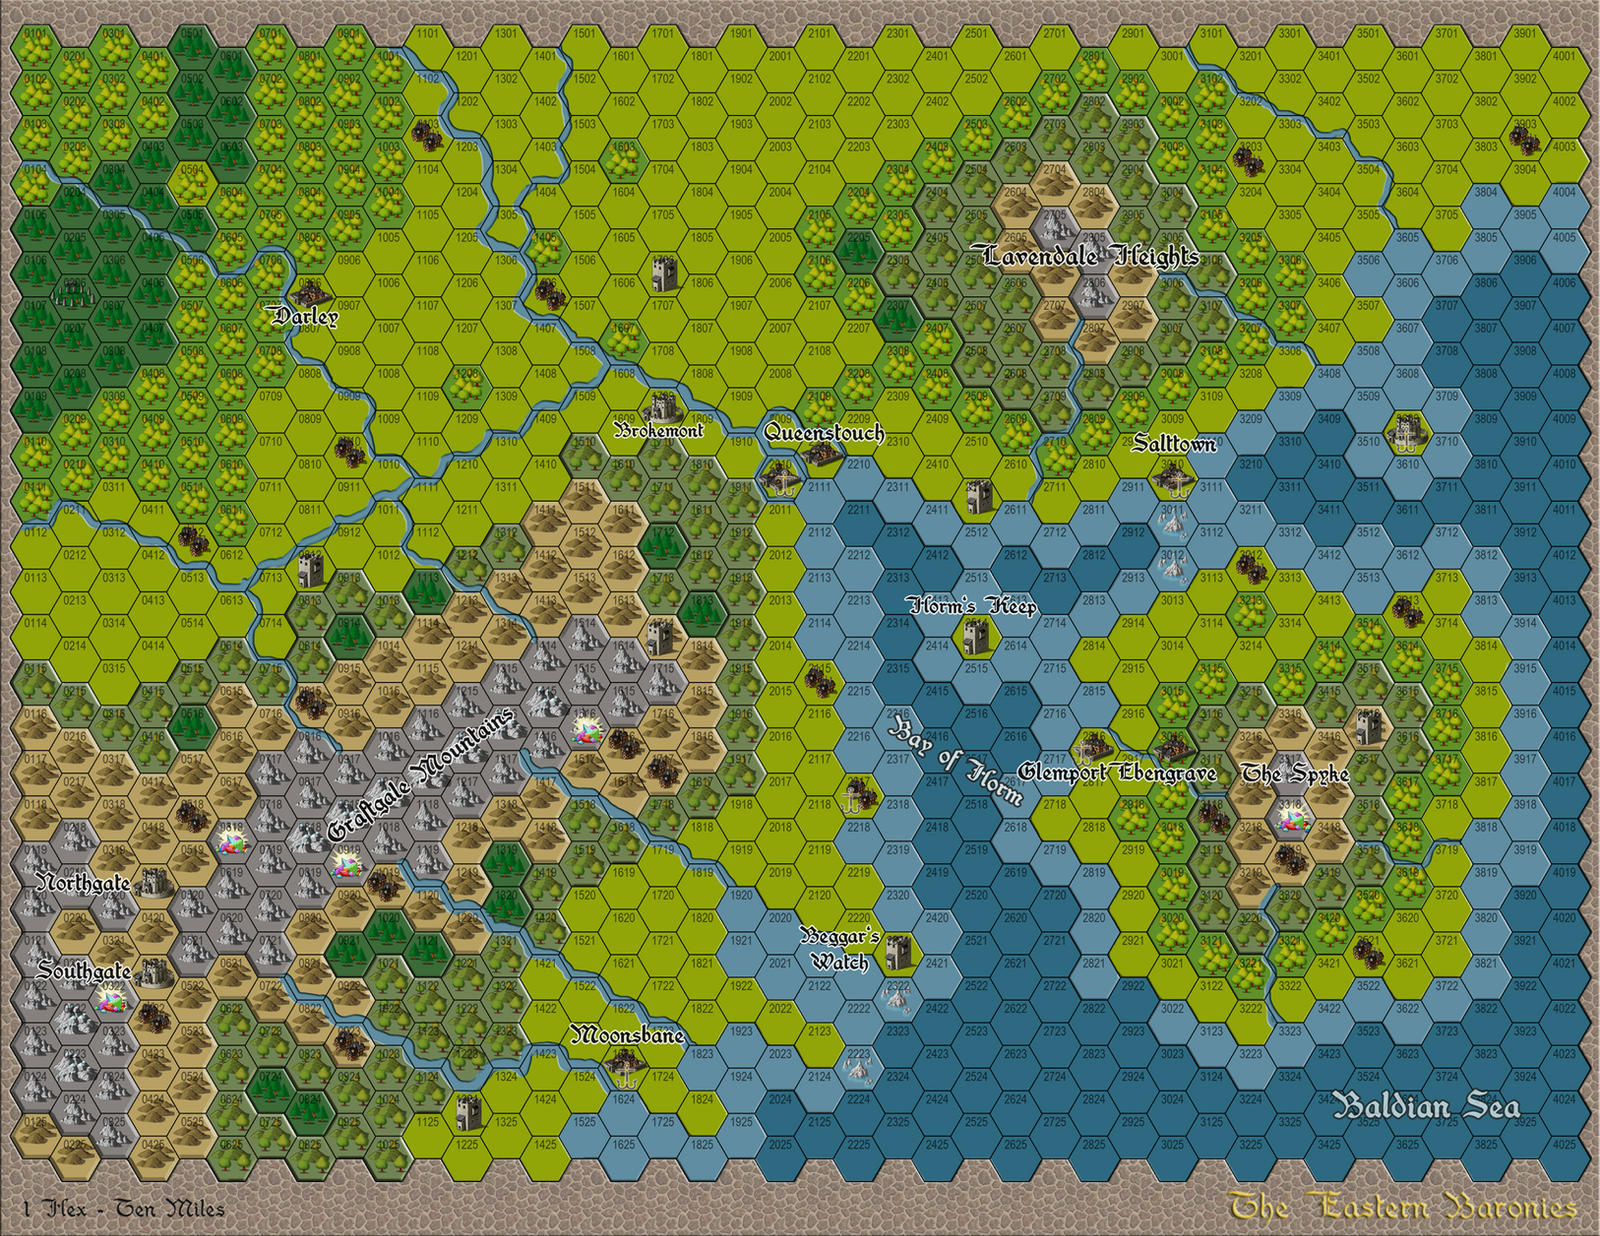 Rpgnet forums re freelance artistcartographer available for commissions gumiabroncs Gallery